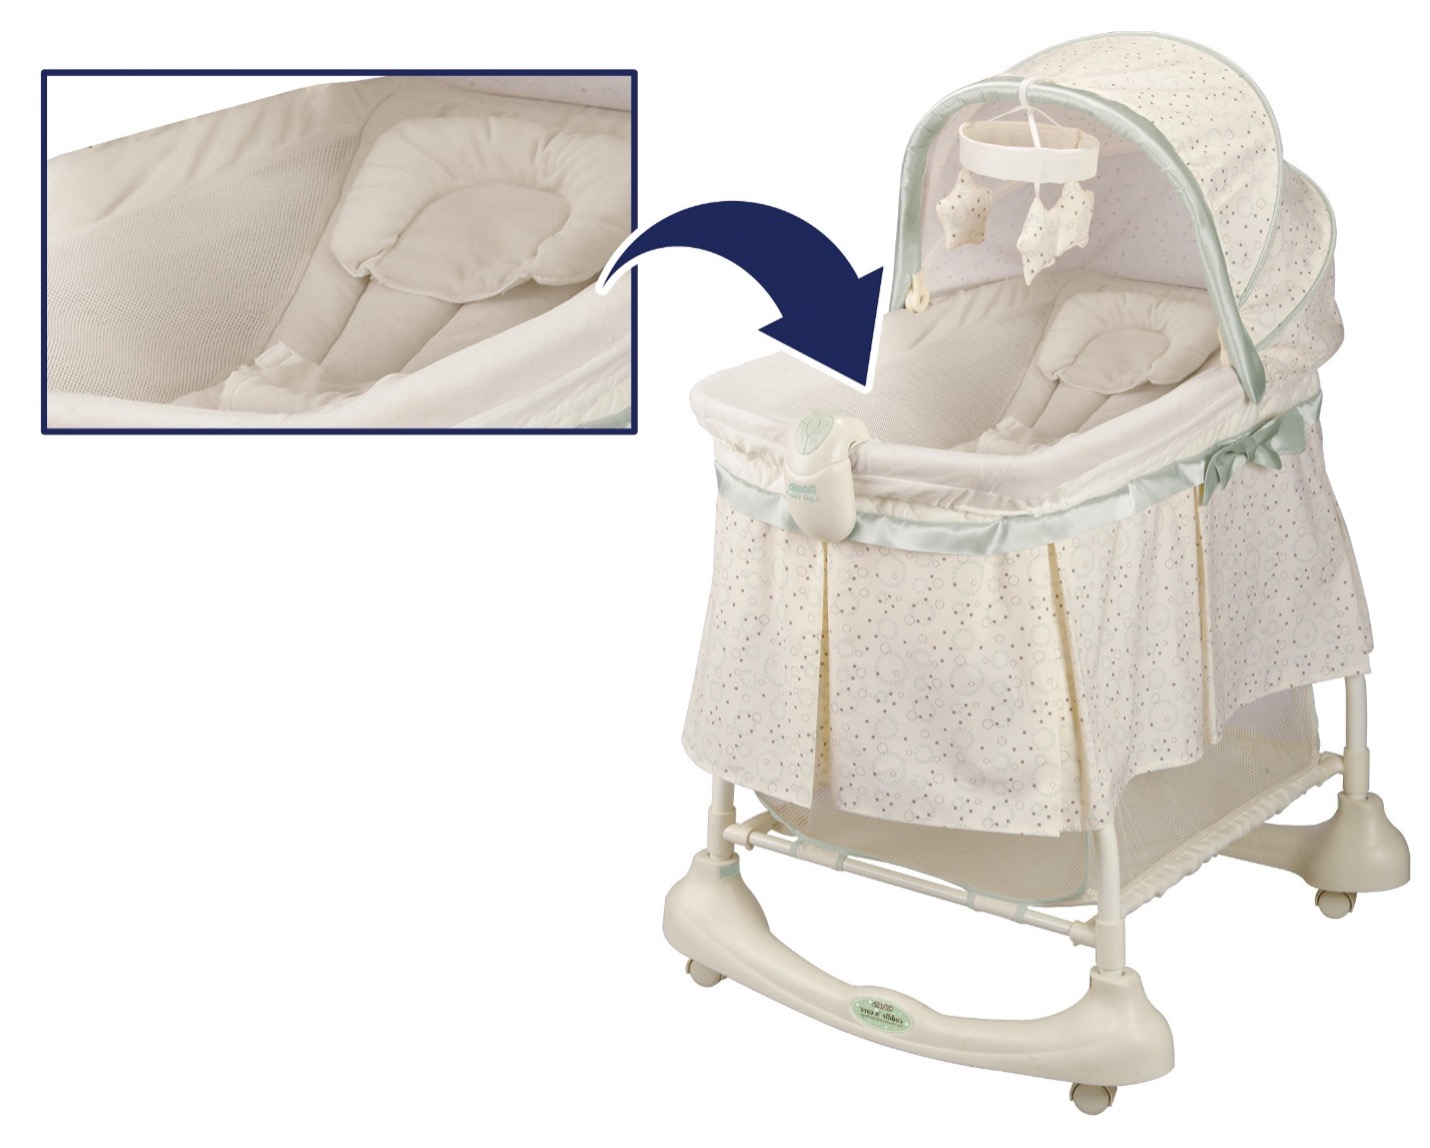 Recalled inclined sleeper accessory found in Kolcraft Cuddle 'n Care 2-in-1 Bassinet & Incline Sleeper (model number starting with KB063)